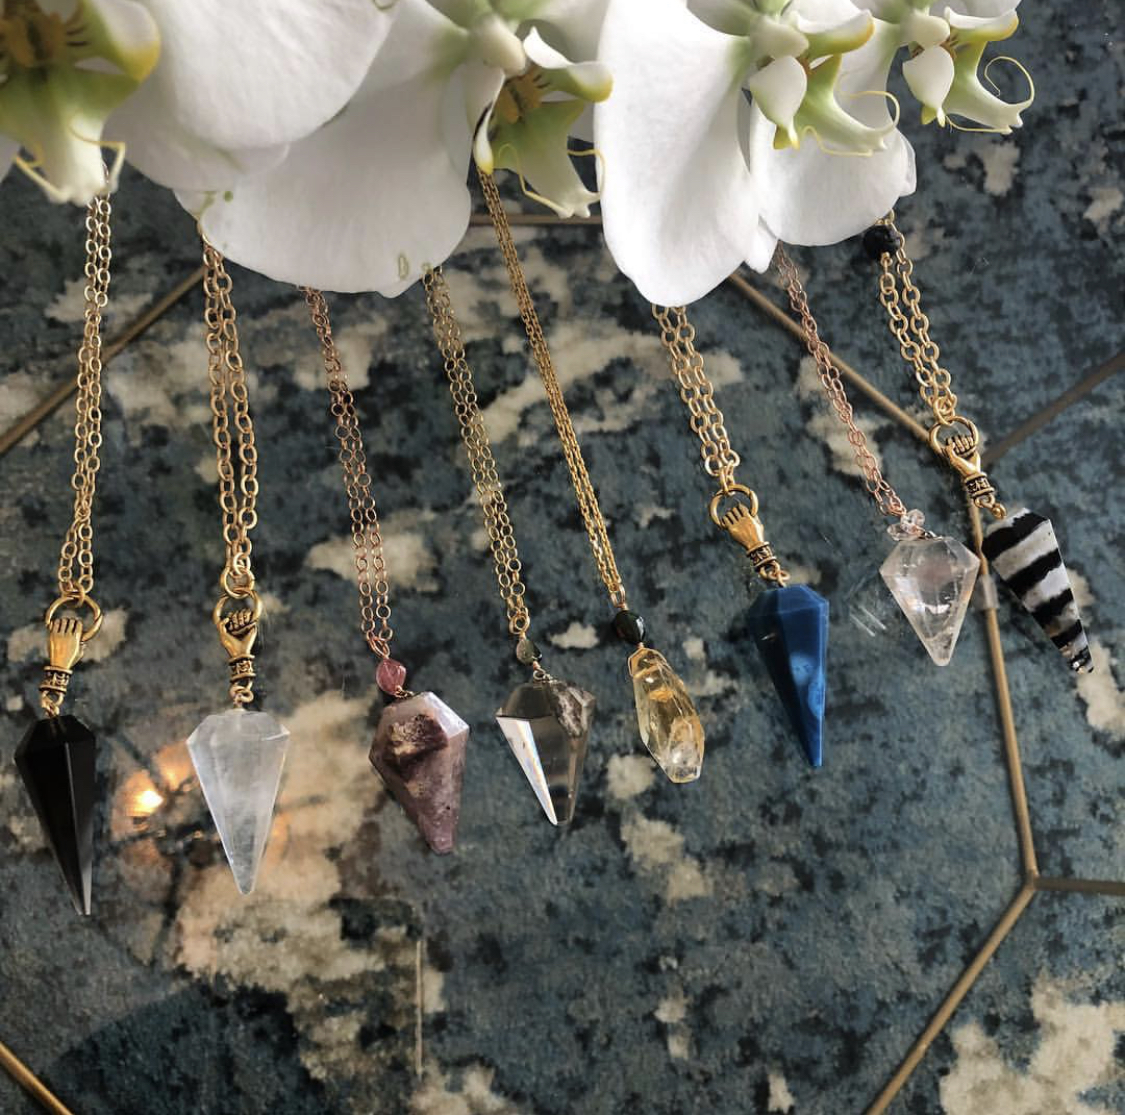 Adornments - Made in the Pacific Northwest by the likes of Pound Jewelry, Anthony Angel, Sandrhyme Jewelry, Zafiro, Nikki Jacoby and more.